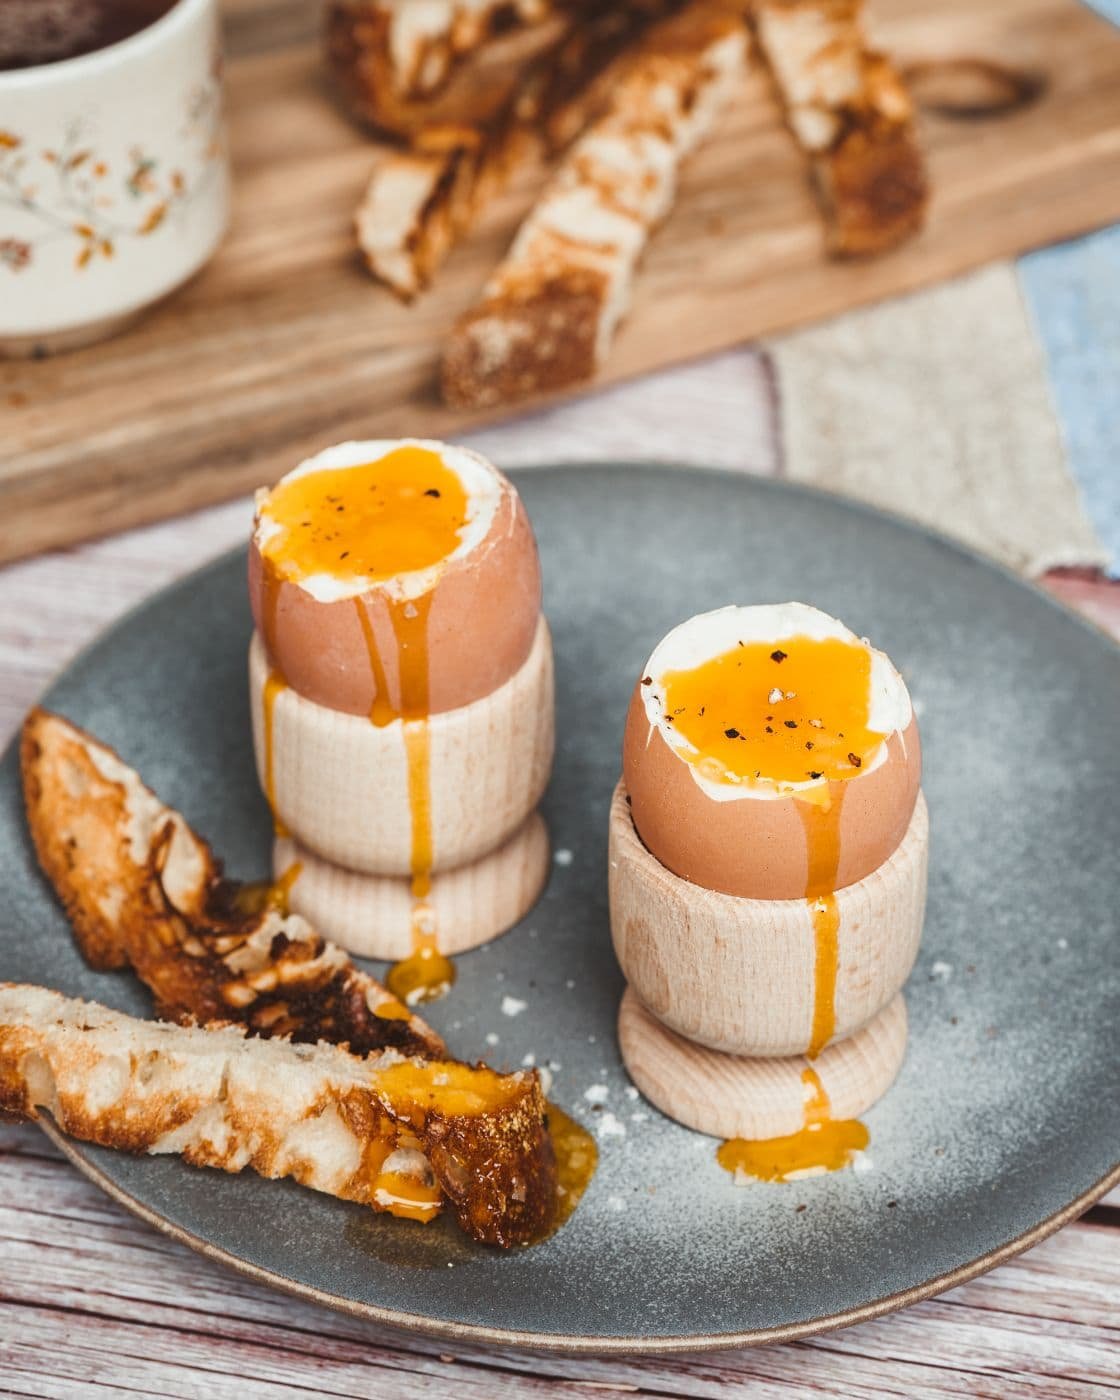 Purely Organic Dippy Eggs with bread